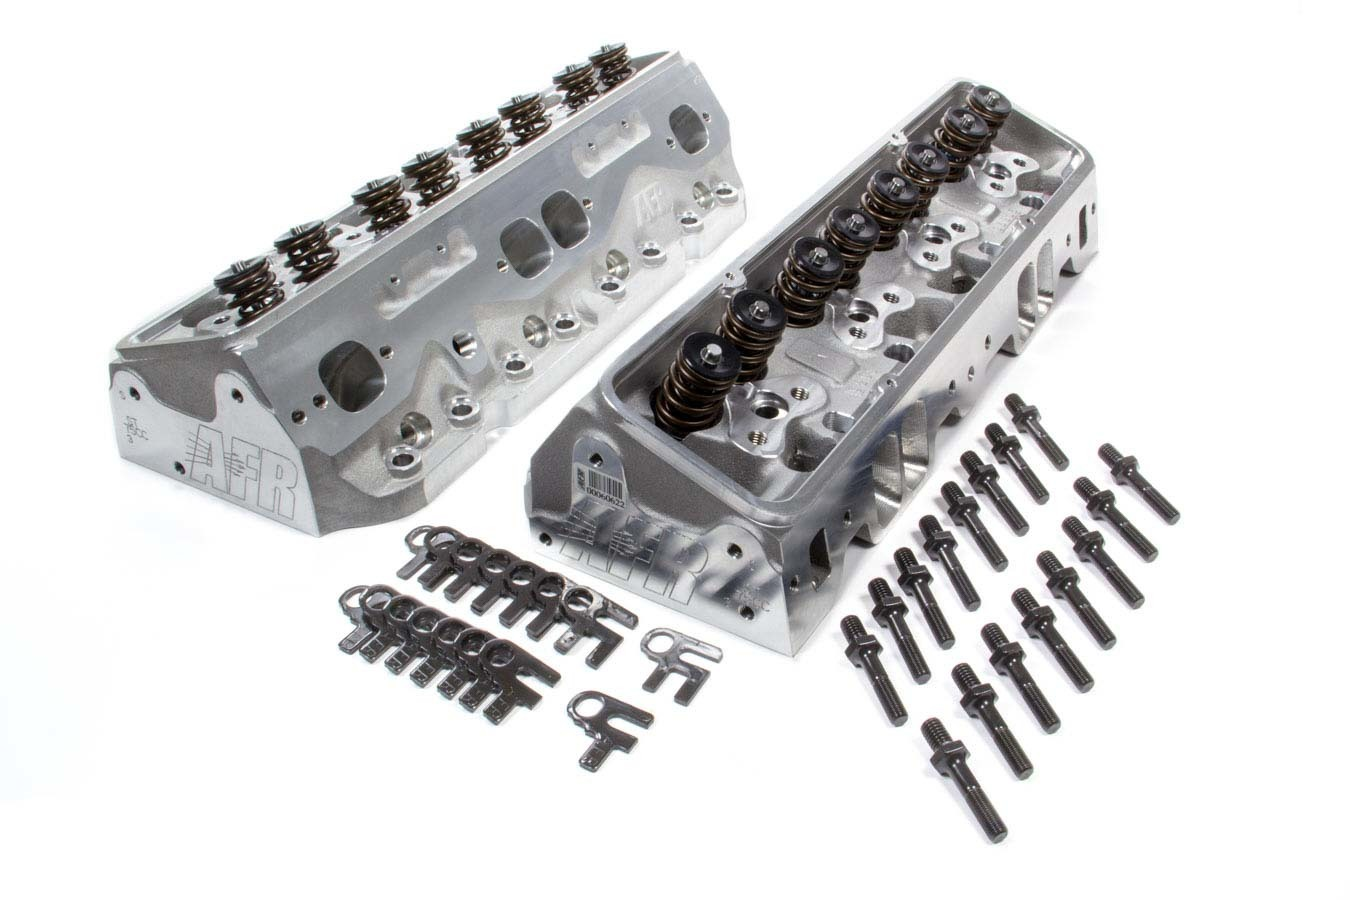 Air Flow Research 0911 Cylinder Head, Eliminator Street, Assembled, 2.020 / 1.600 in Valves, 180 cc Intake, 75 cc Chamber, 1.290 in Springs, Aluminum, Small Block Chevy, Pair